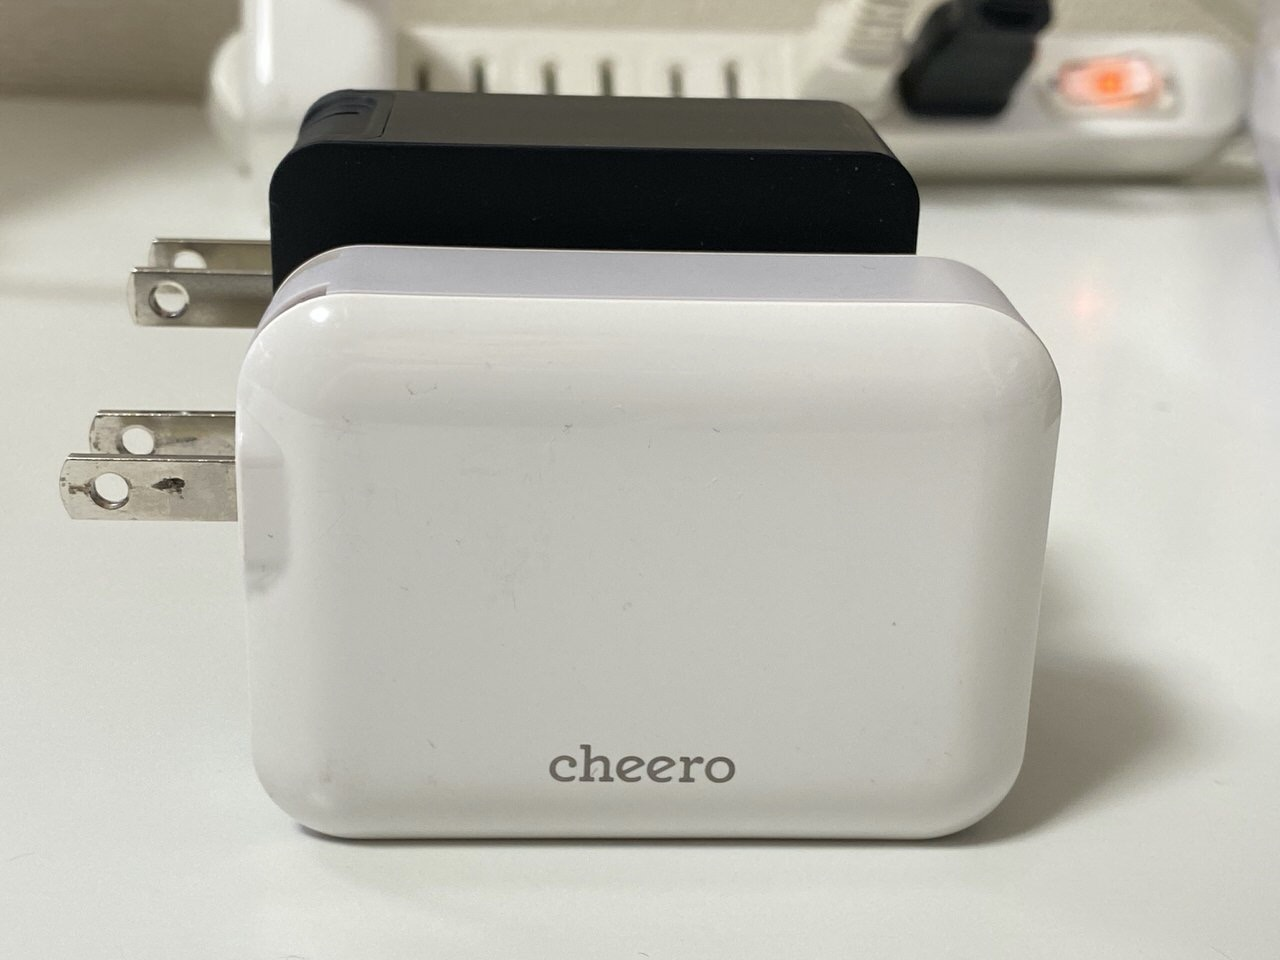 【cheero】「2 Port PD Charger 57W」9